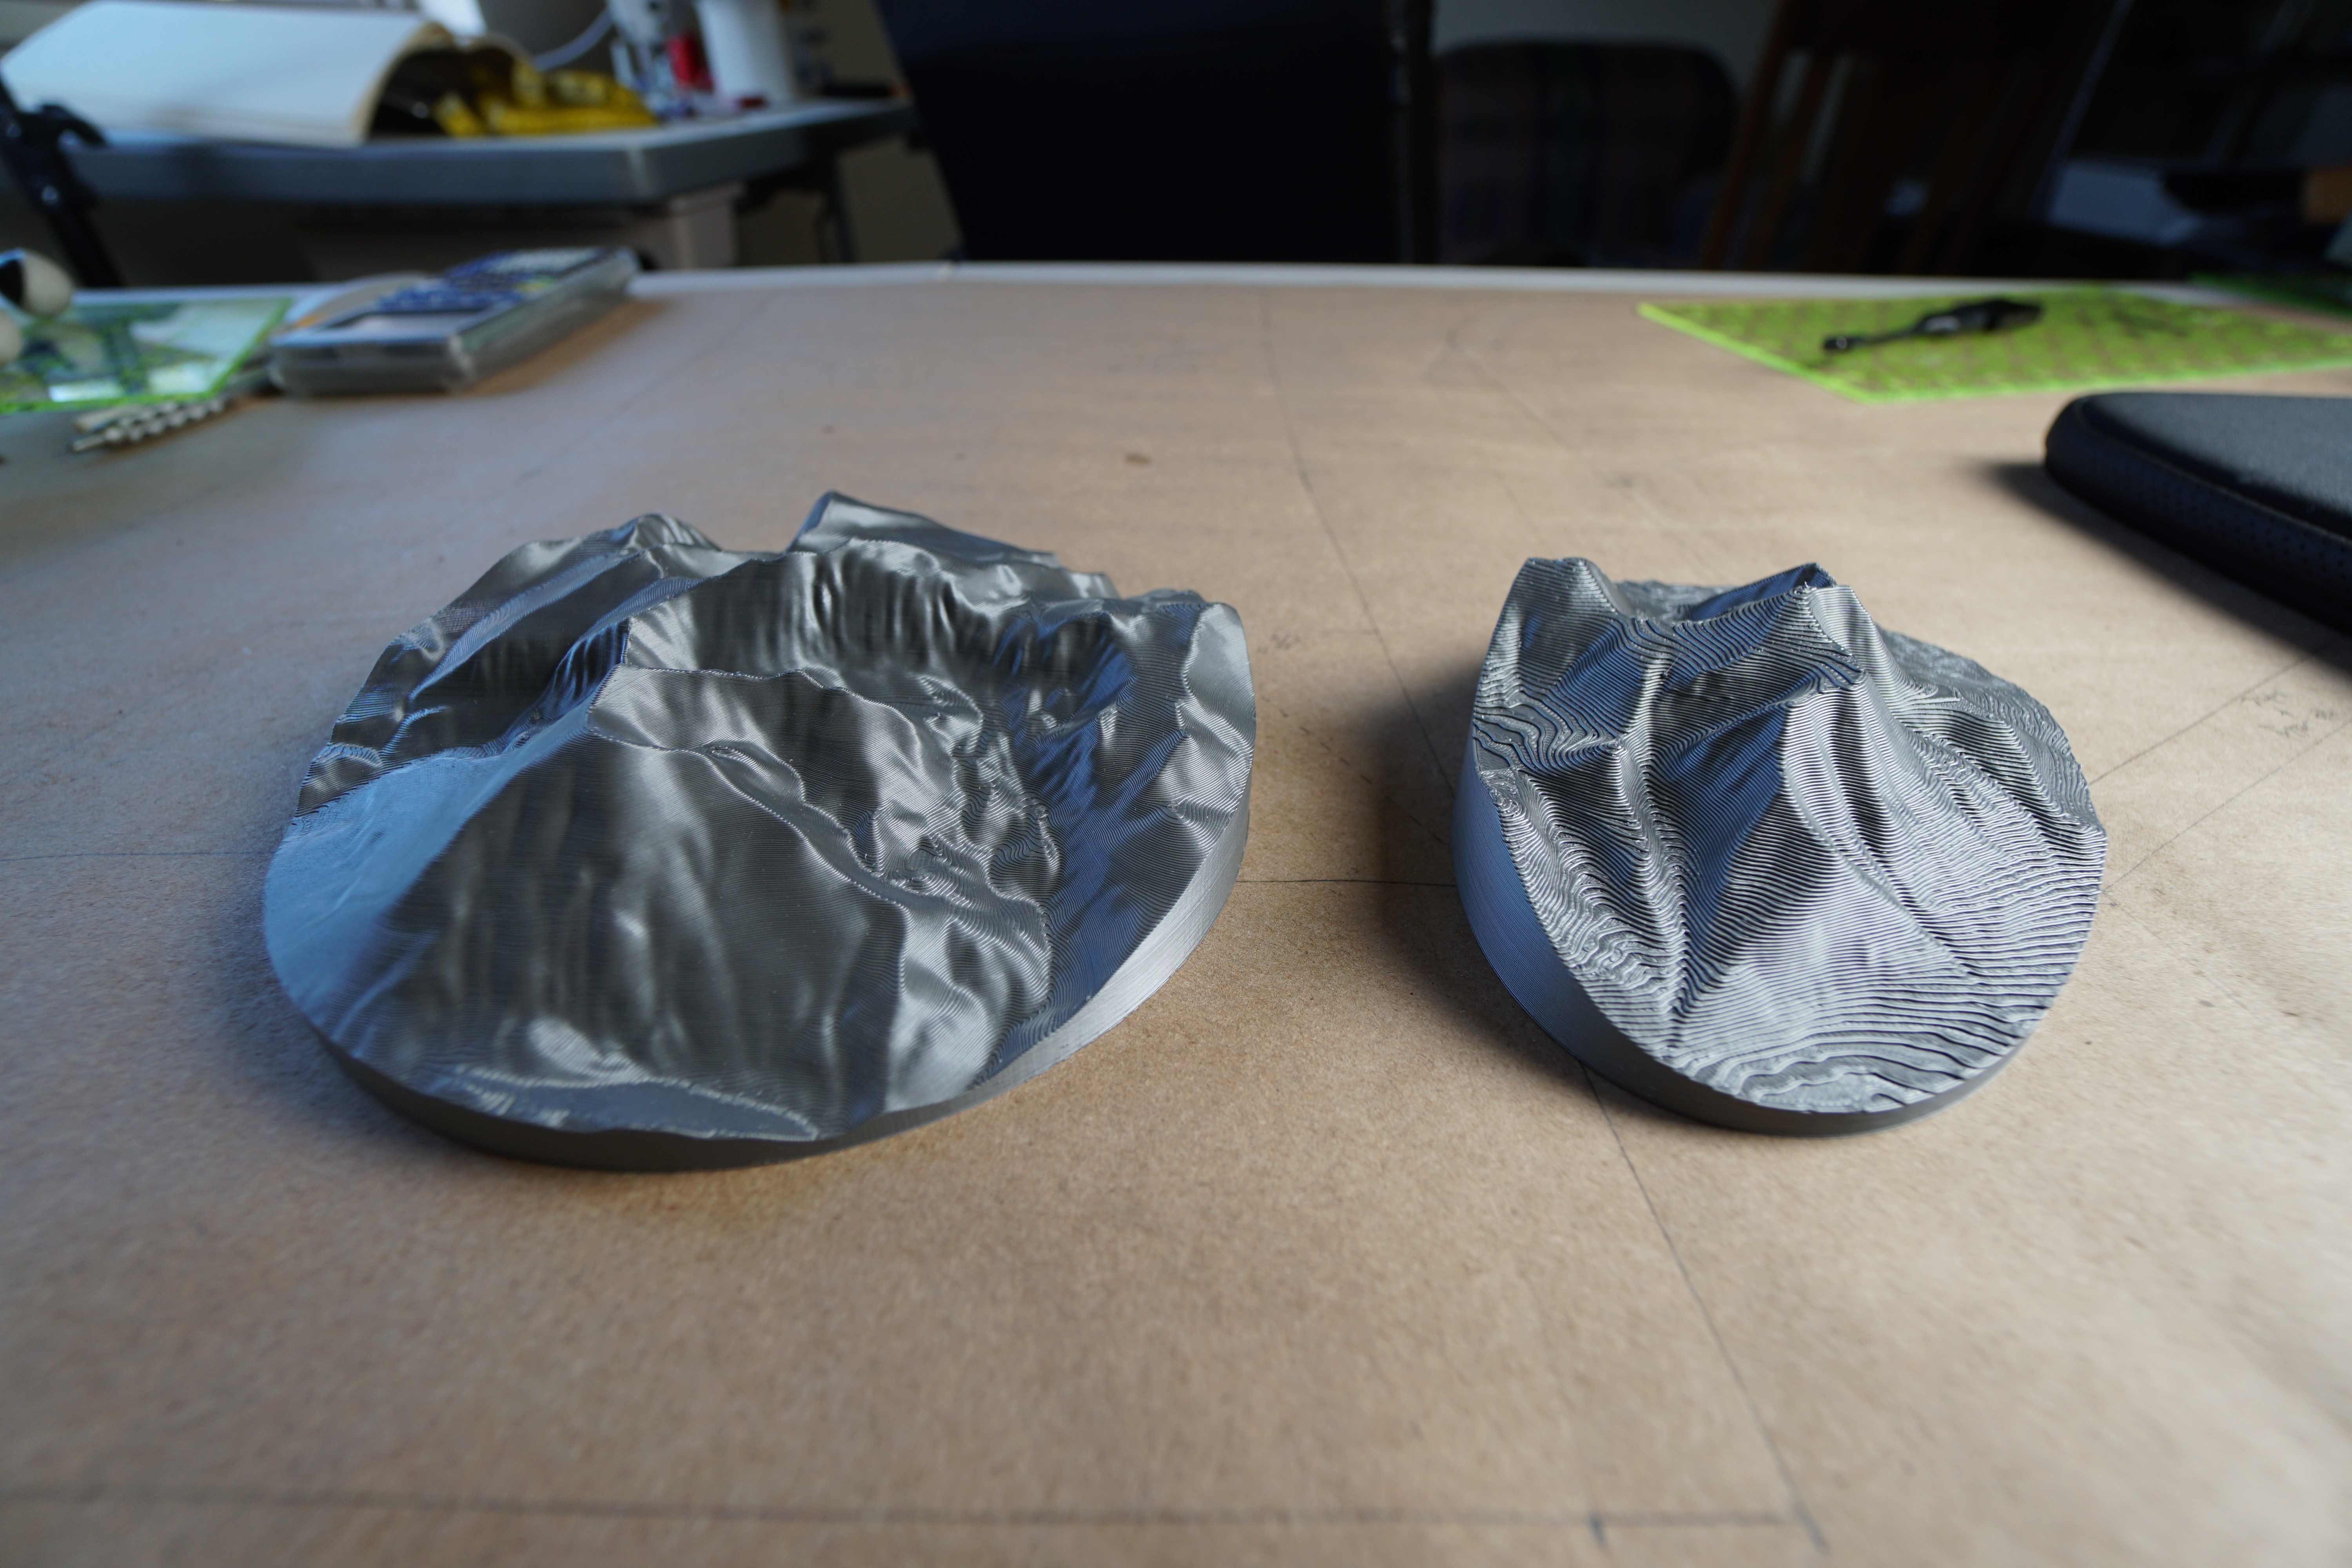 How To 3D Print A Mountain – A guide to finding, modeling